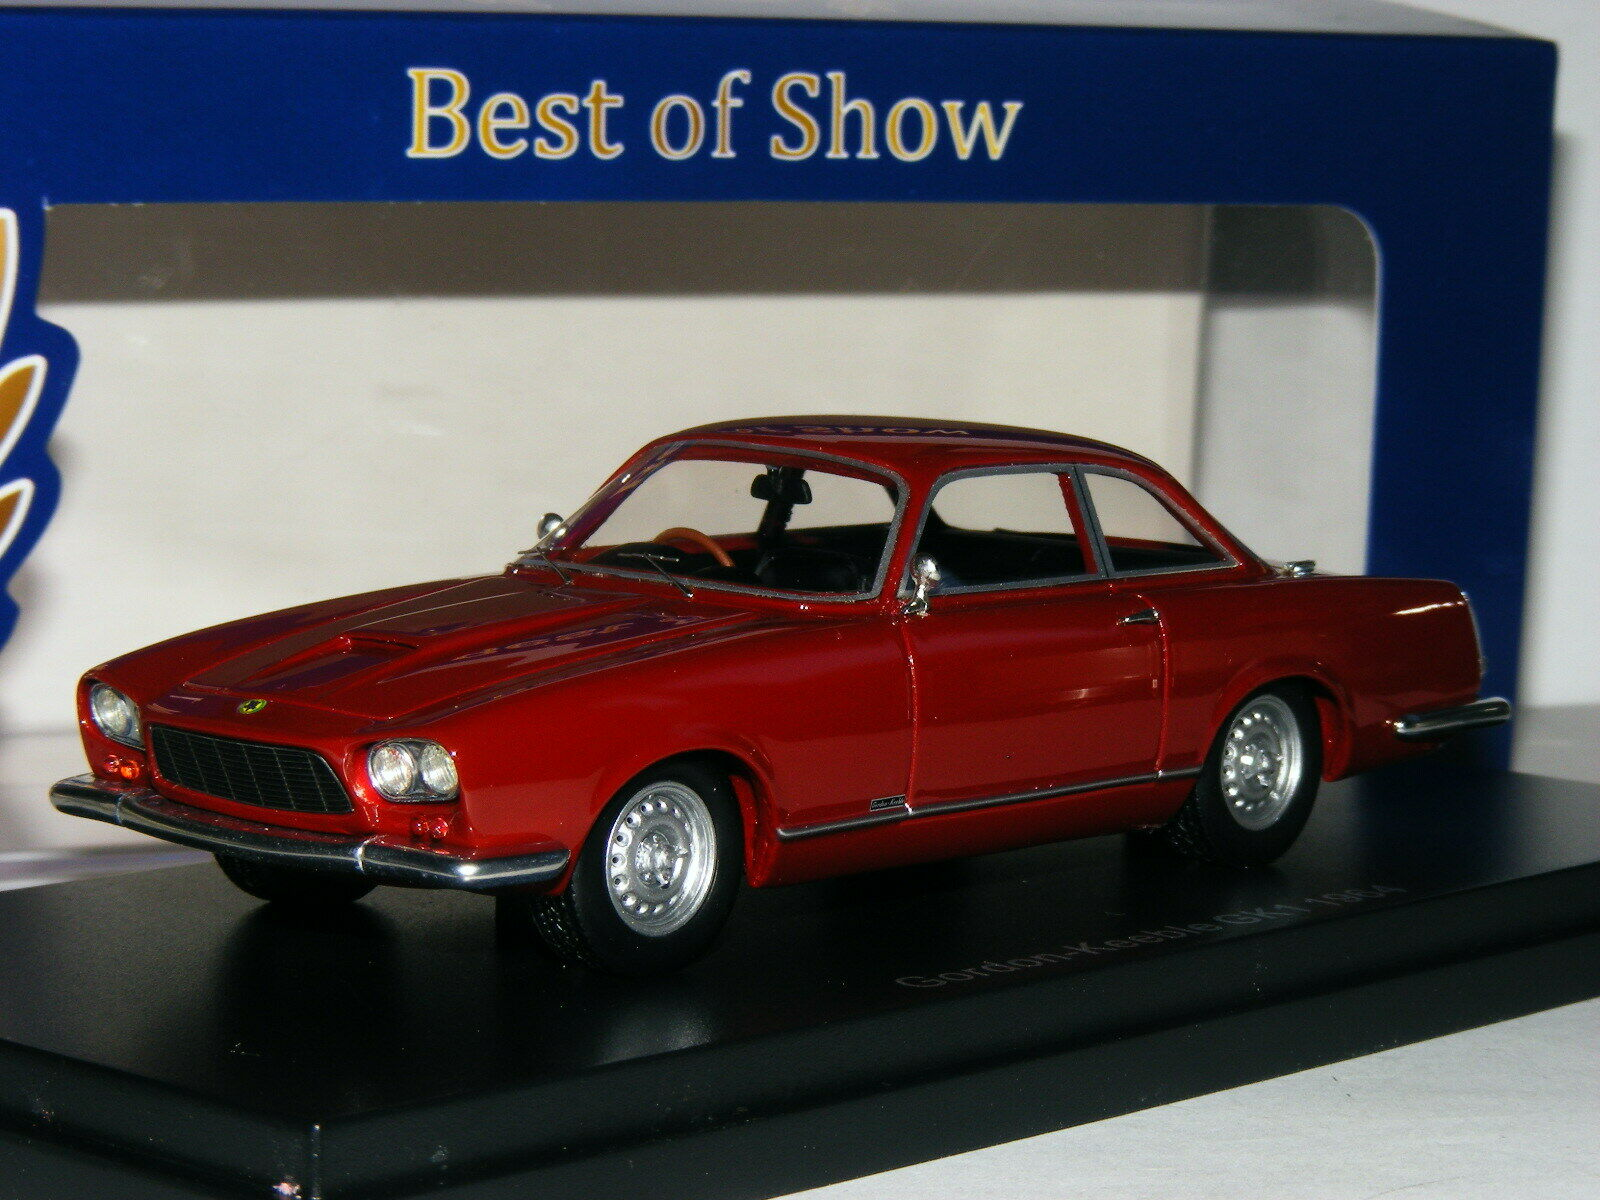 BEST of Show BOS43775 1964 GORDON-Keeble GK1 Coupe Rosso Scuro